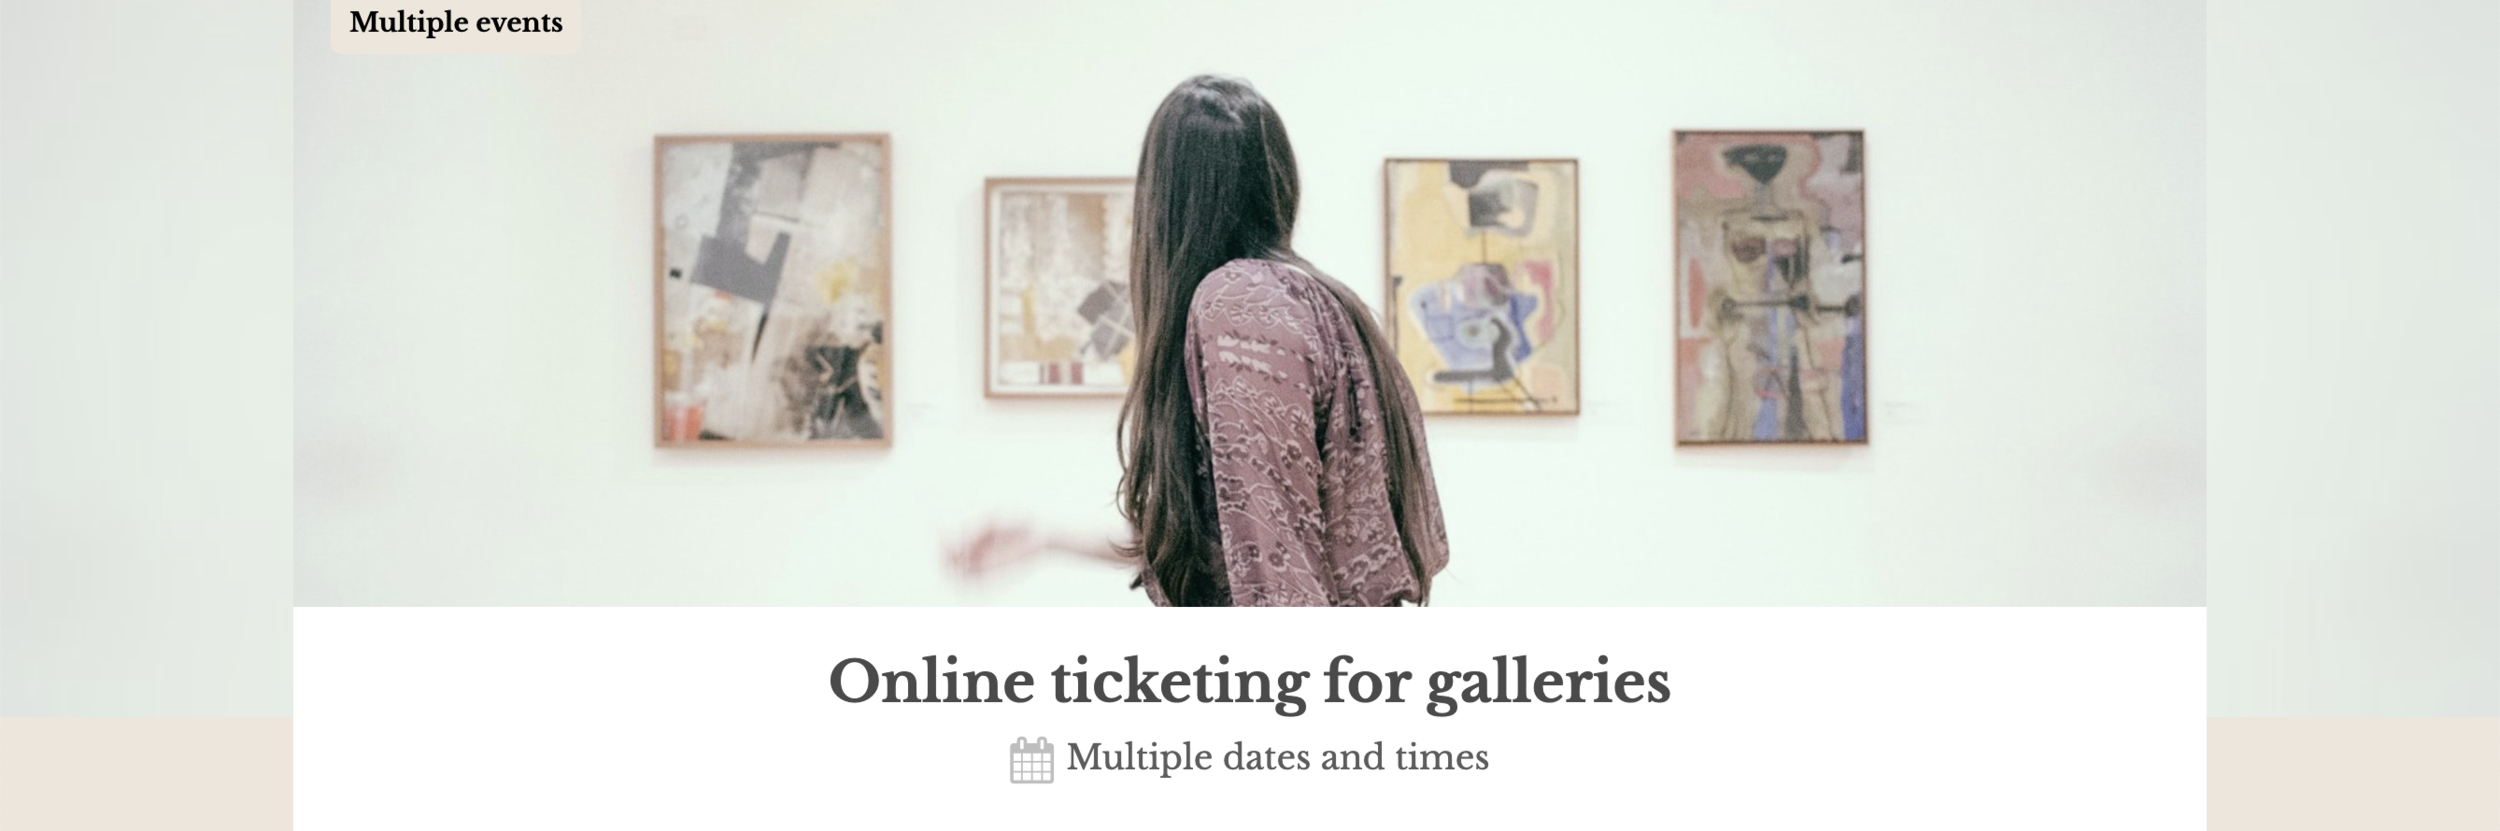 Sell tickets for an art gallery